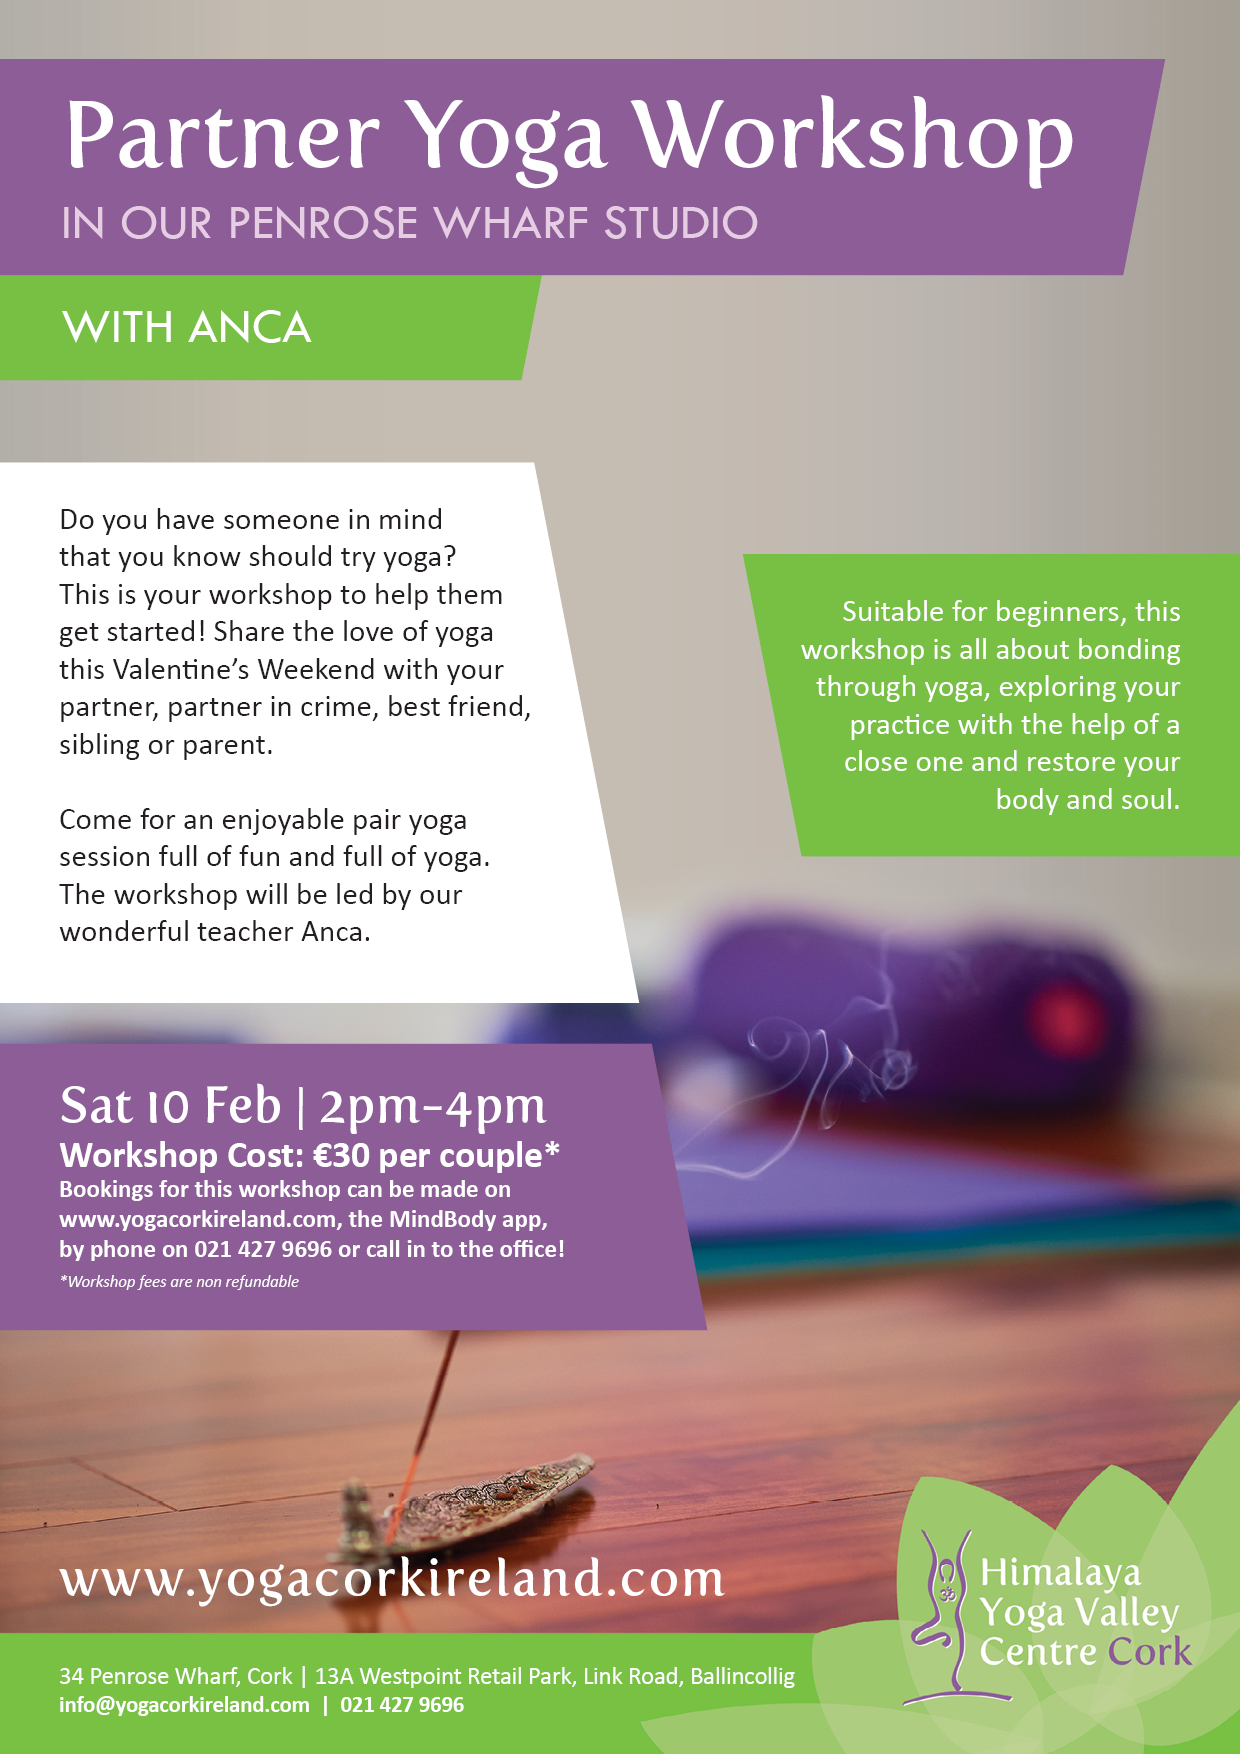 Share Your Love Of Yoga Workshop